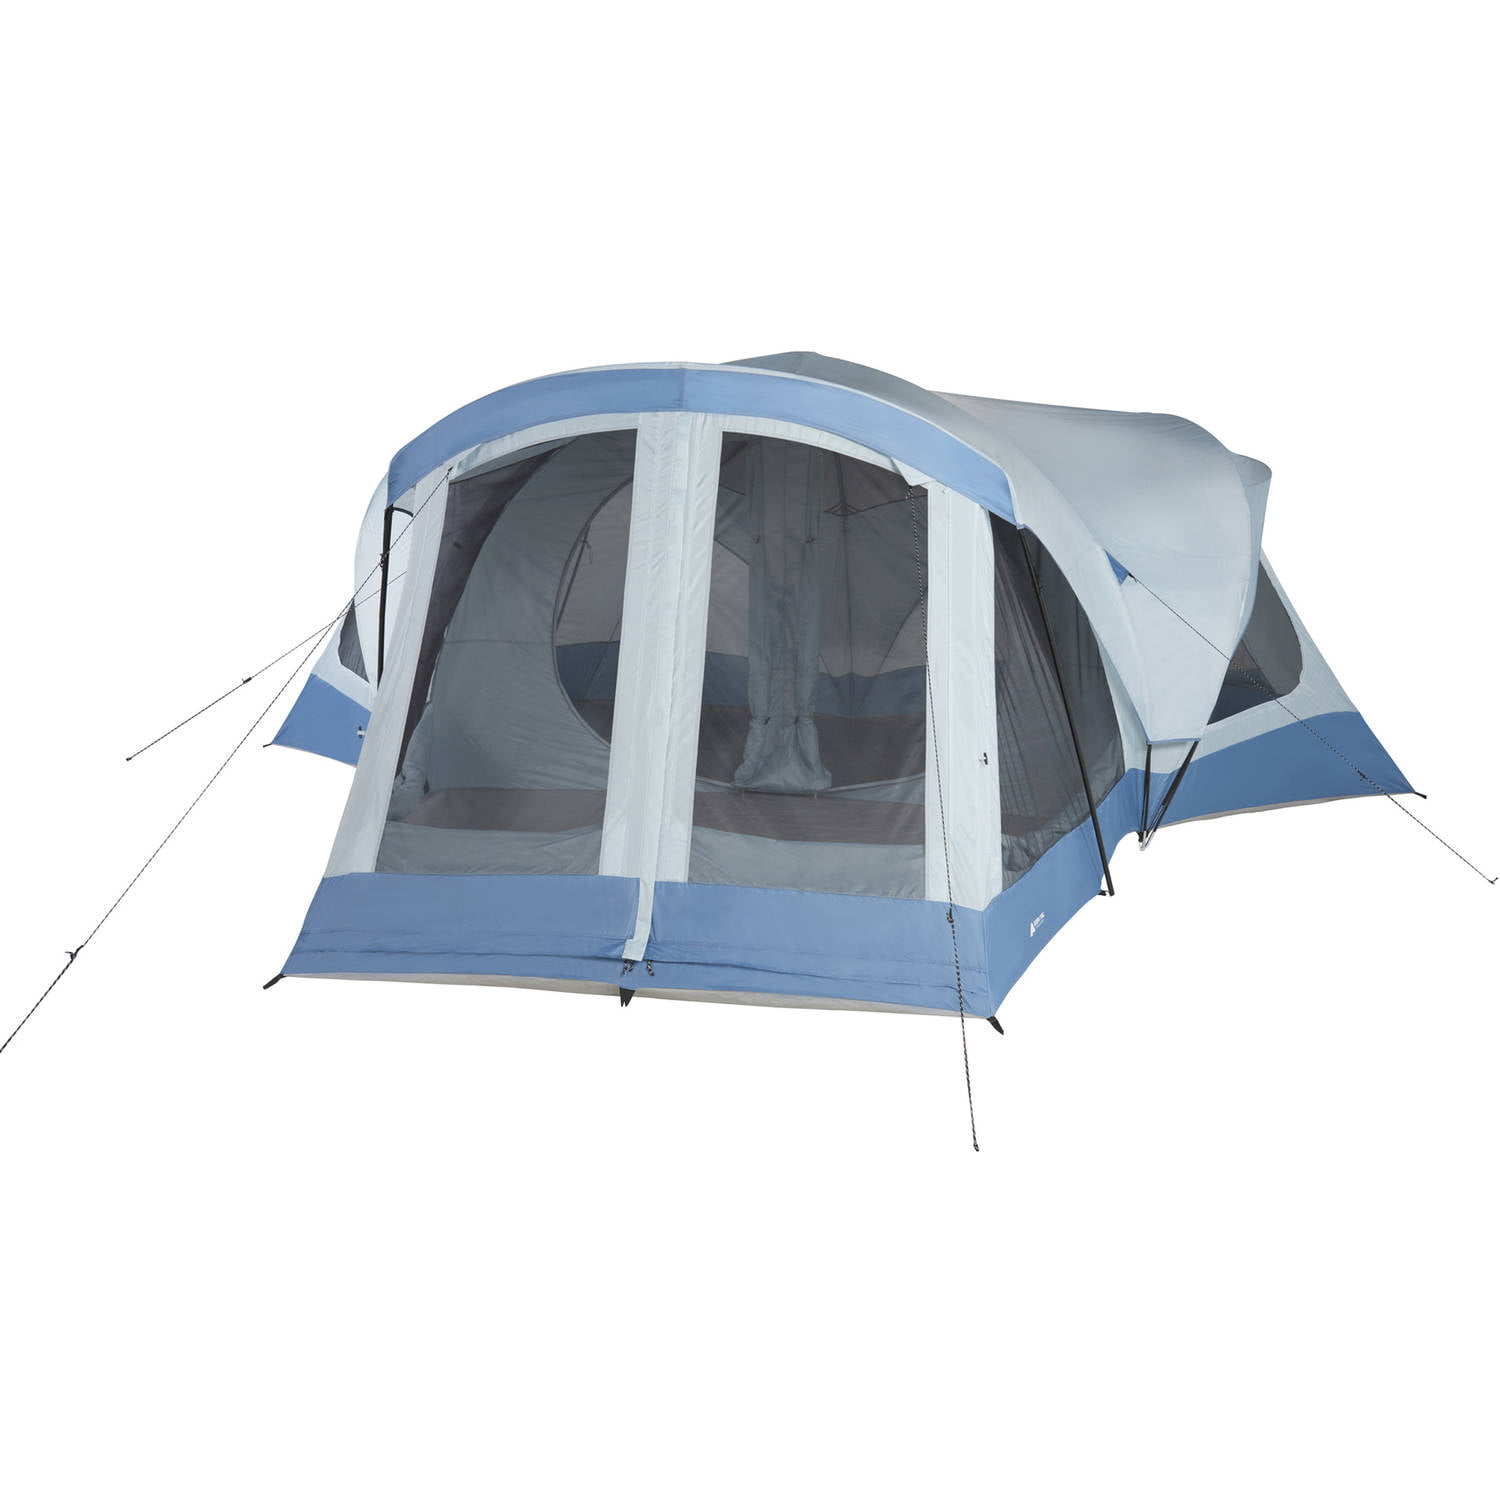 Ozark Trail 18' x 18' Family Tent, Sleeps 14 by Campex (BD) Limited